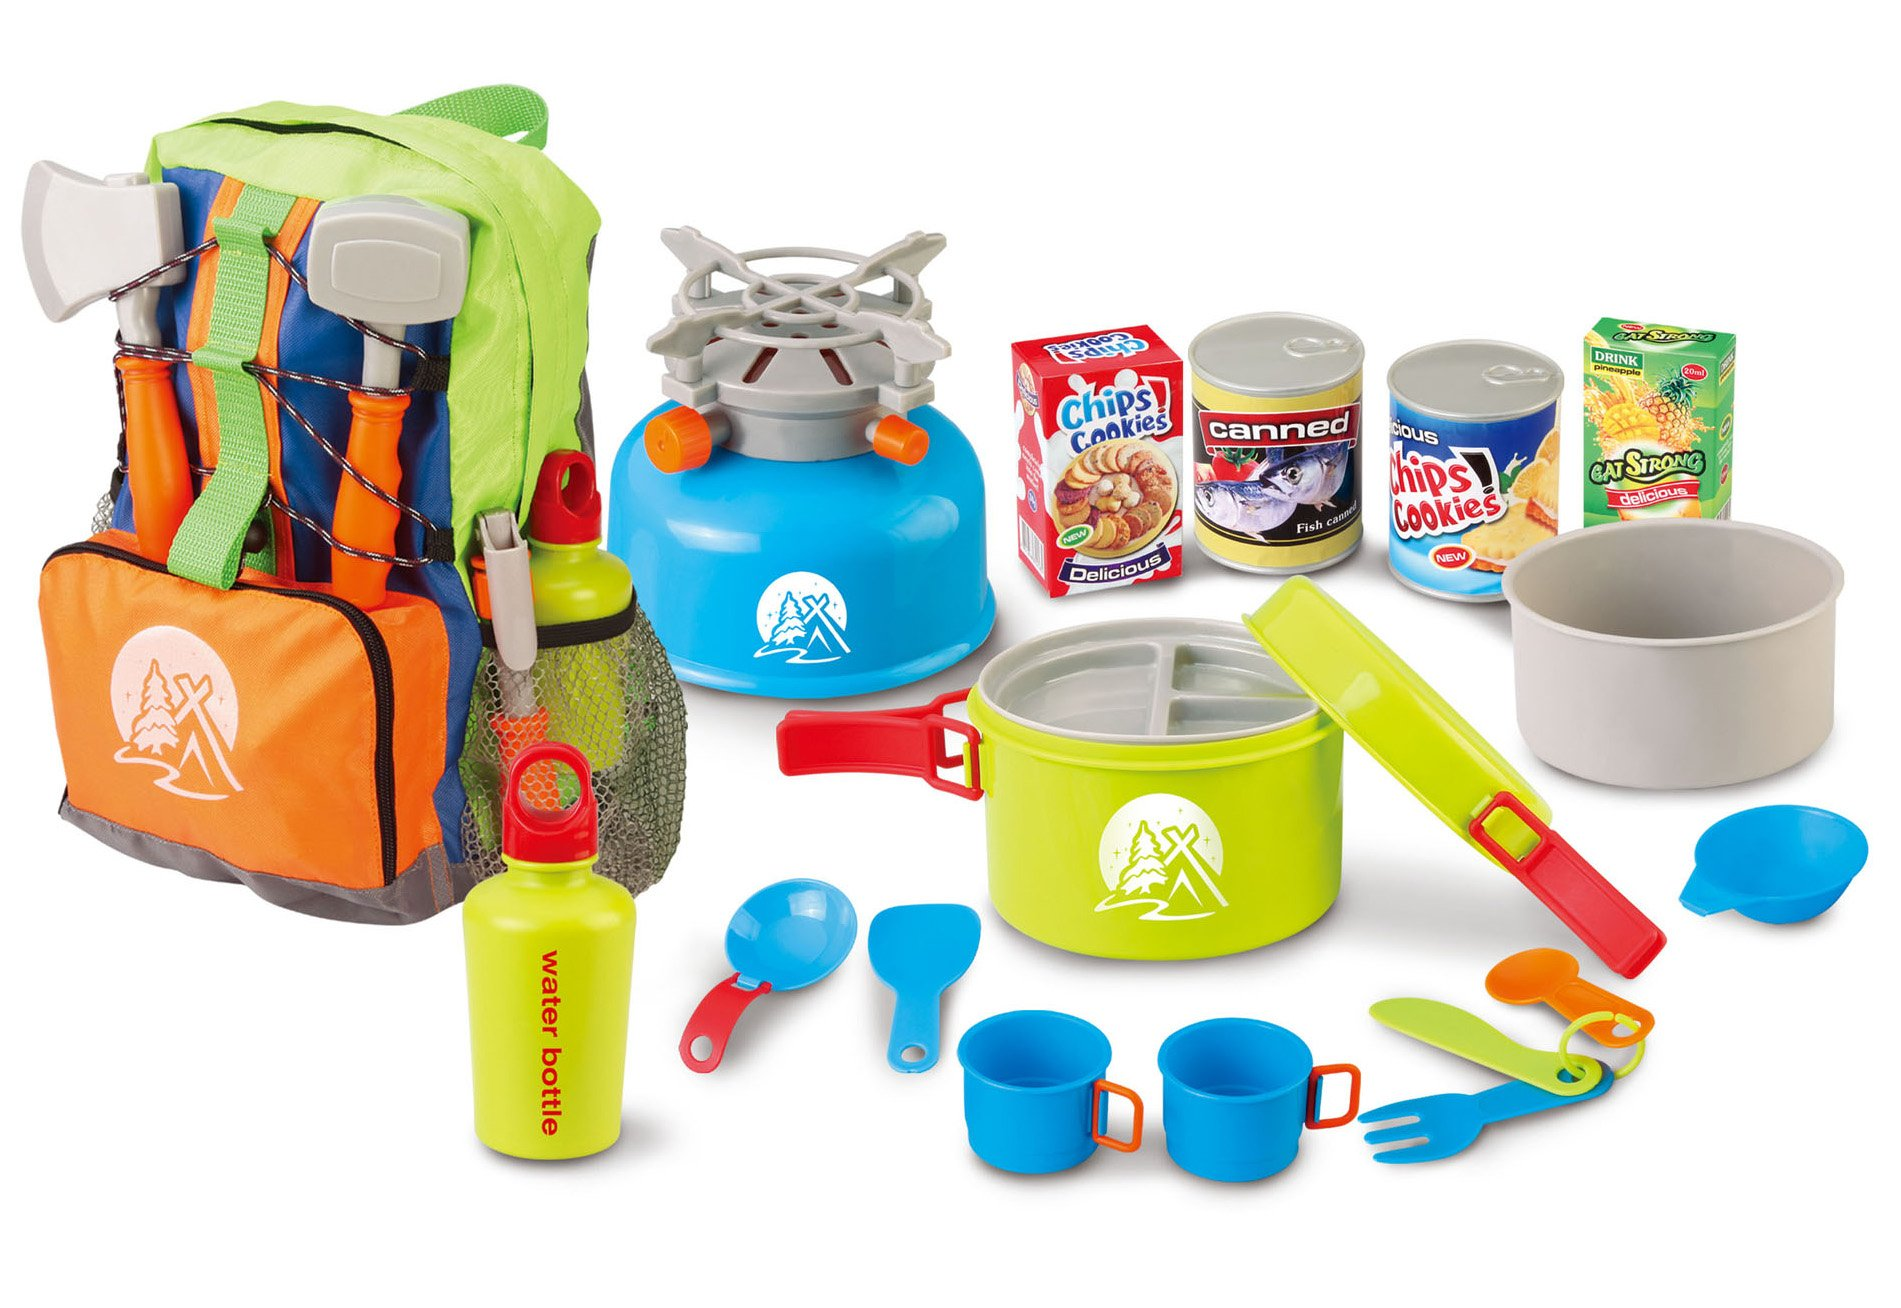 Berry Toys Little Explorer Camping Backpack Cooker Play Set (13-Piece)